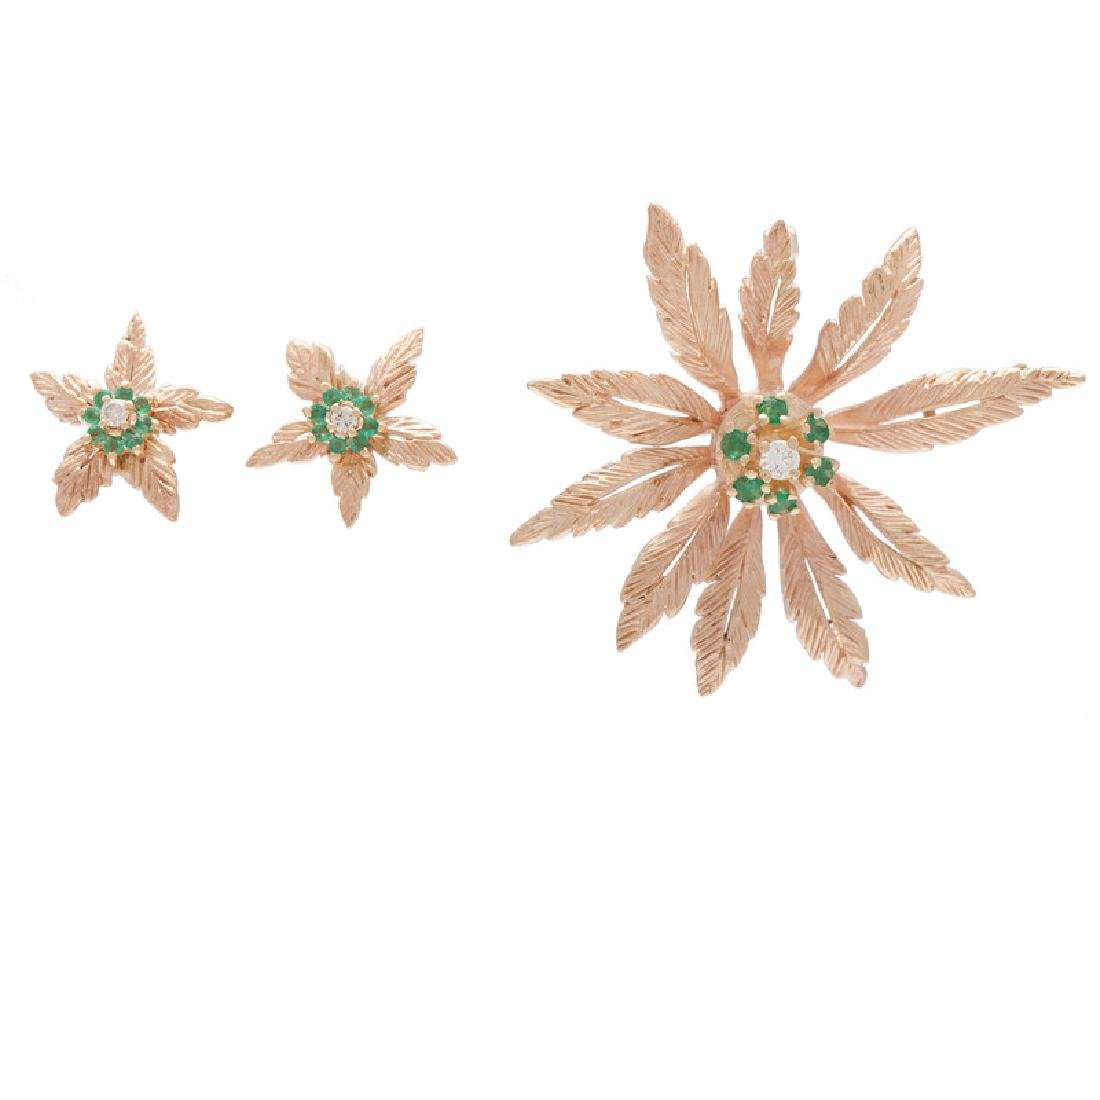 Karat Gold Diamond and Emerald Earrings and